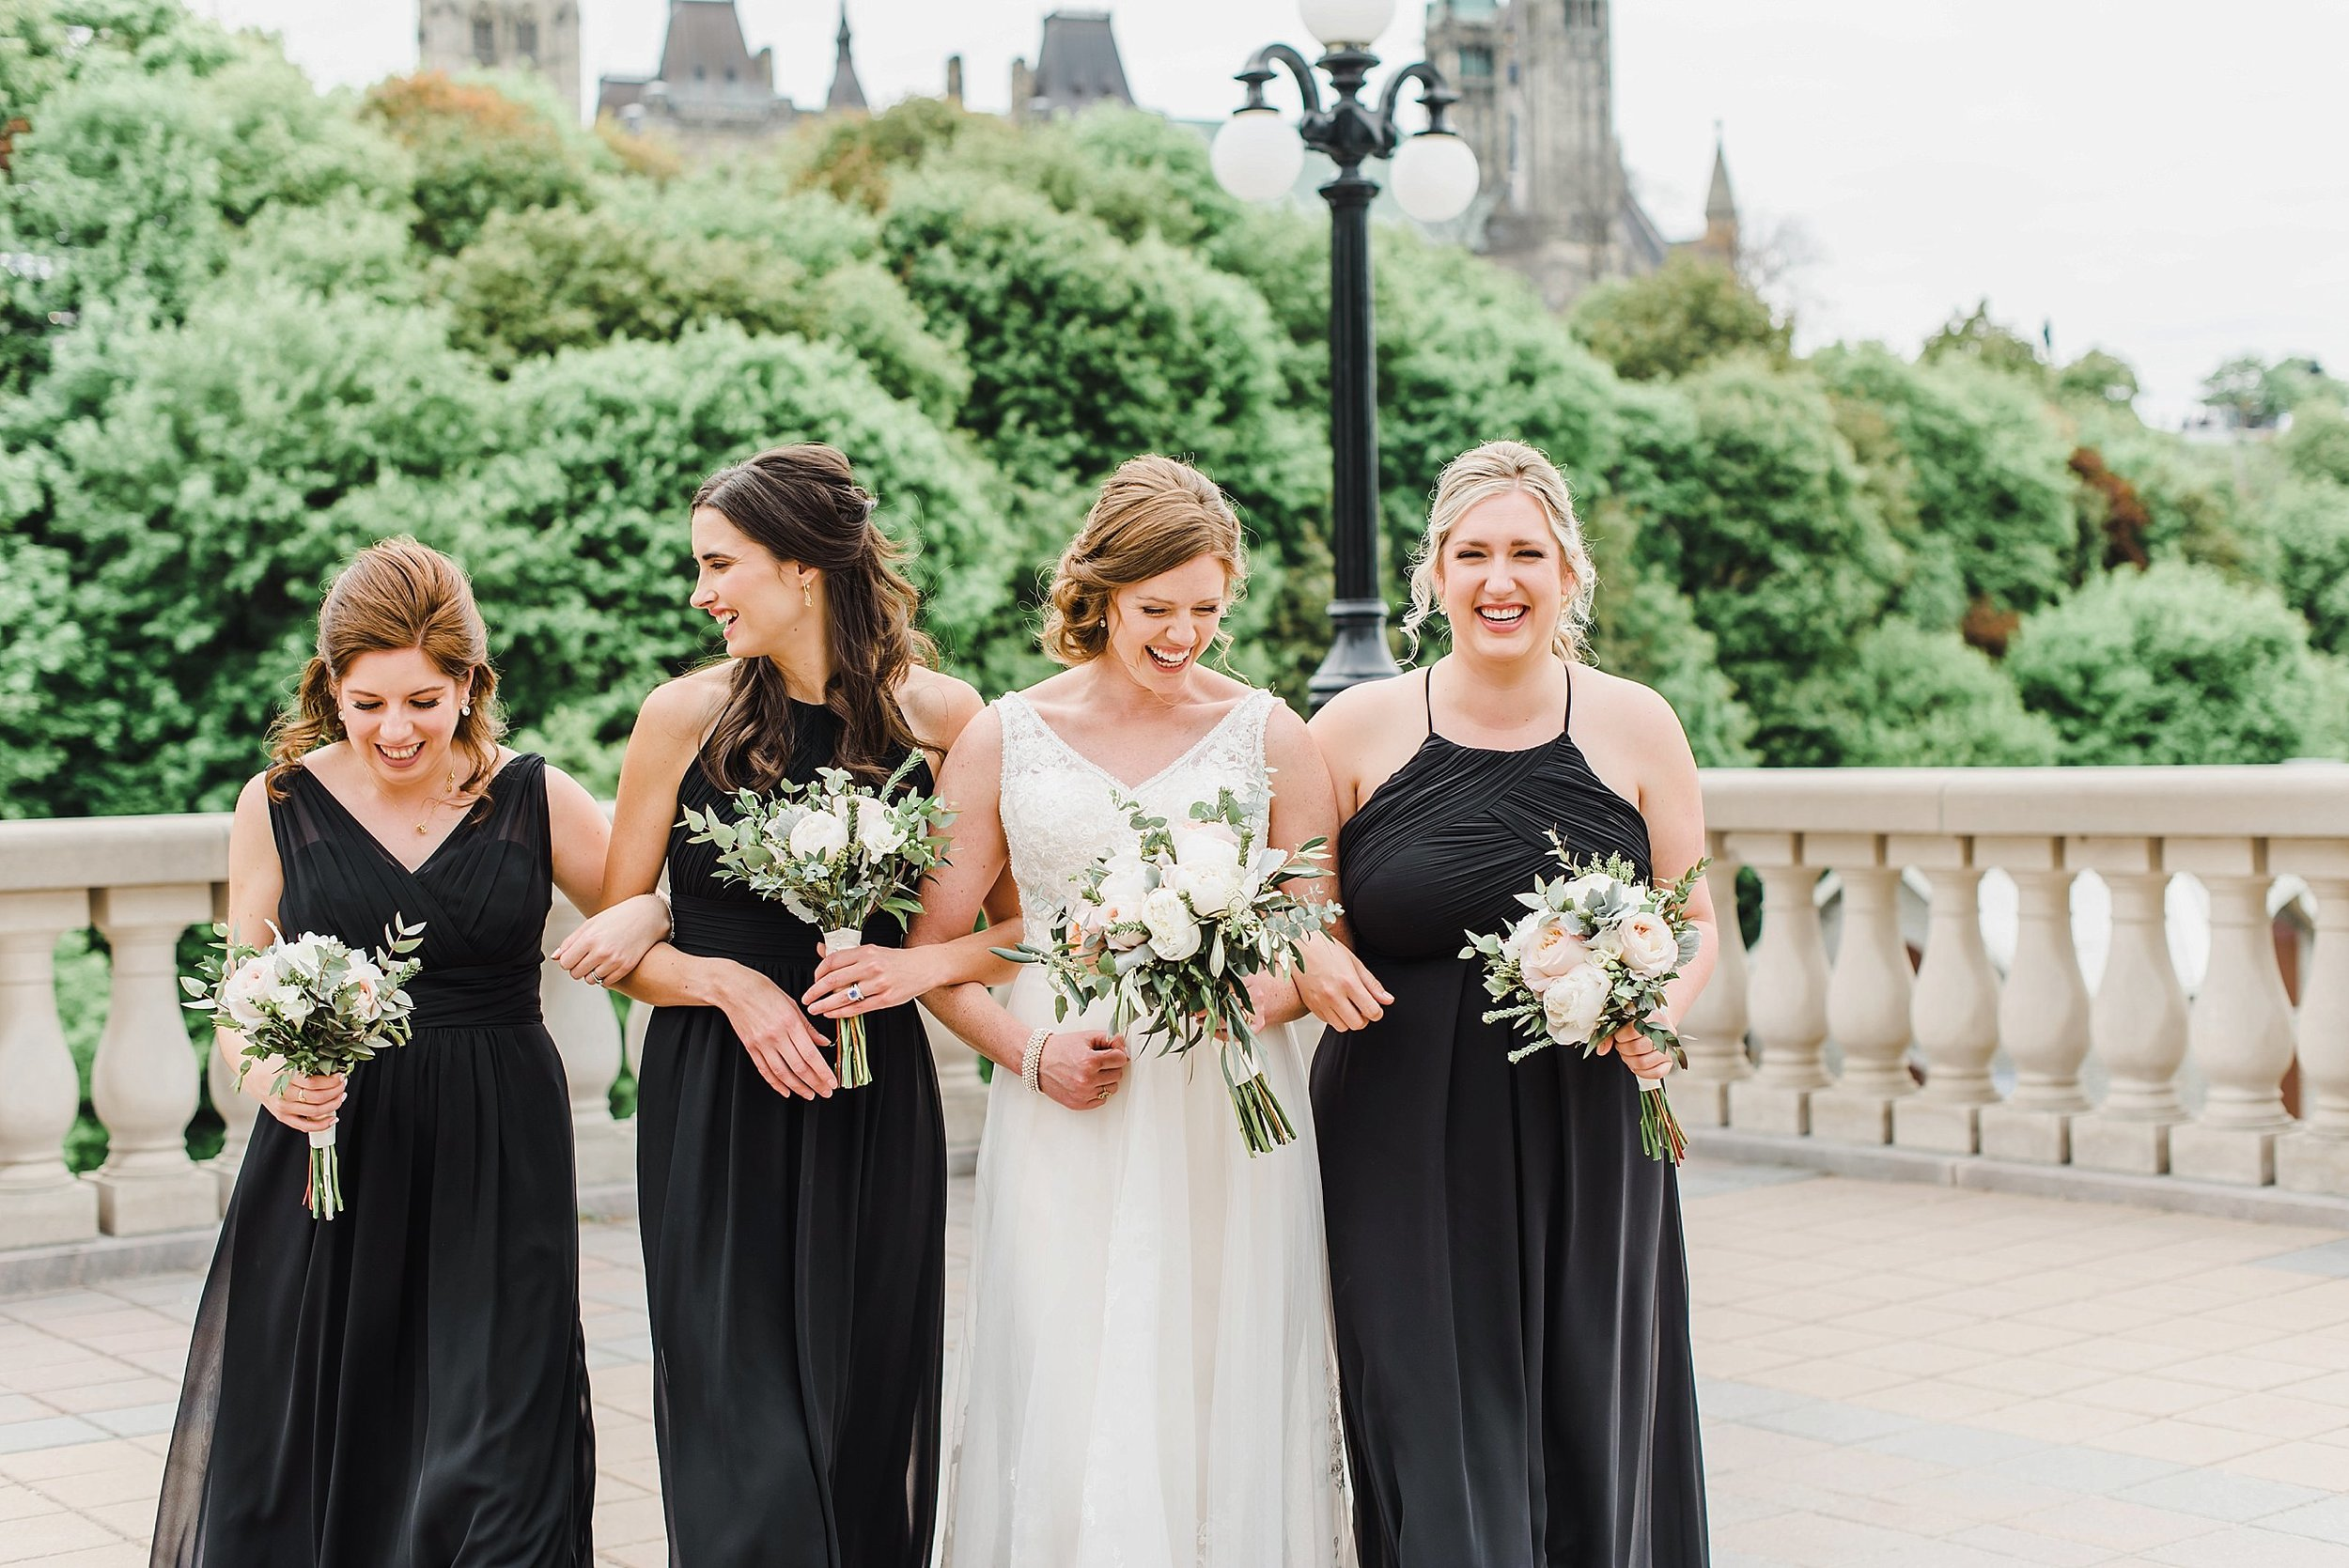 light airy indie fine art ottawa wedding photographer | Ali and Batoul Photography_0362.jpg